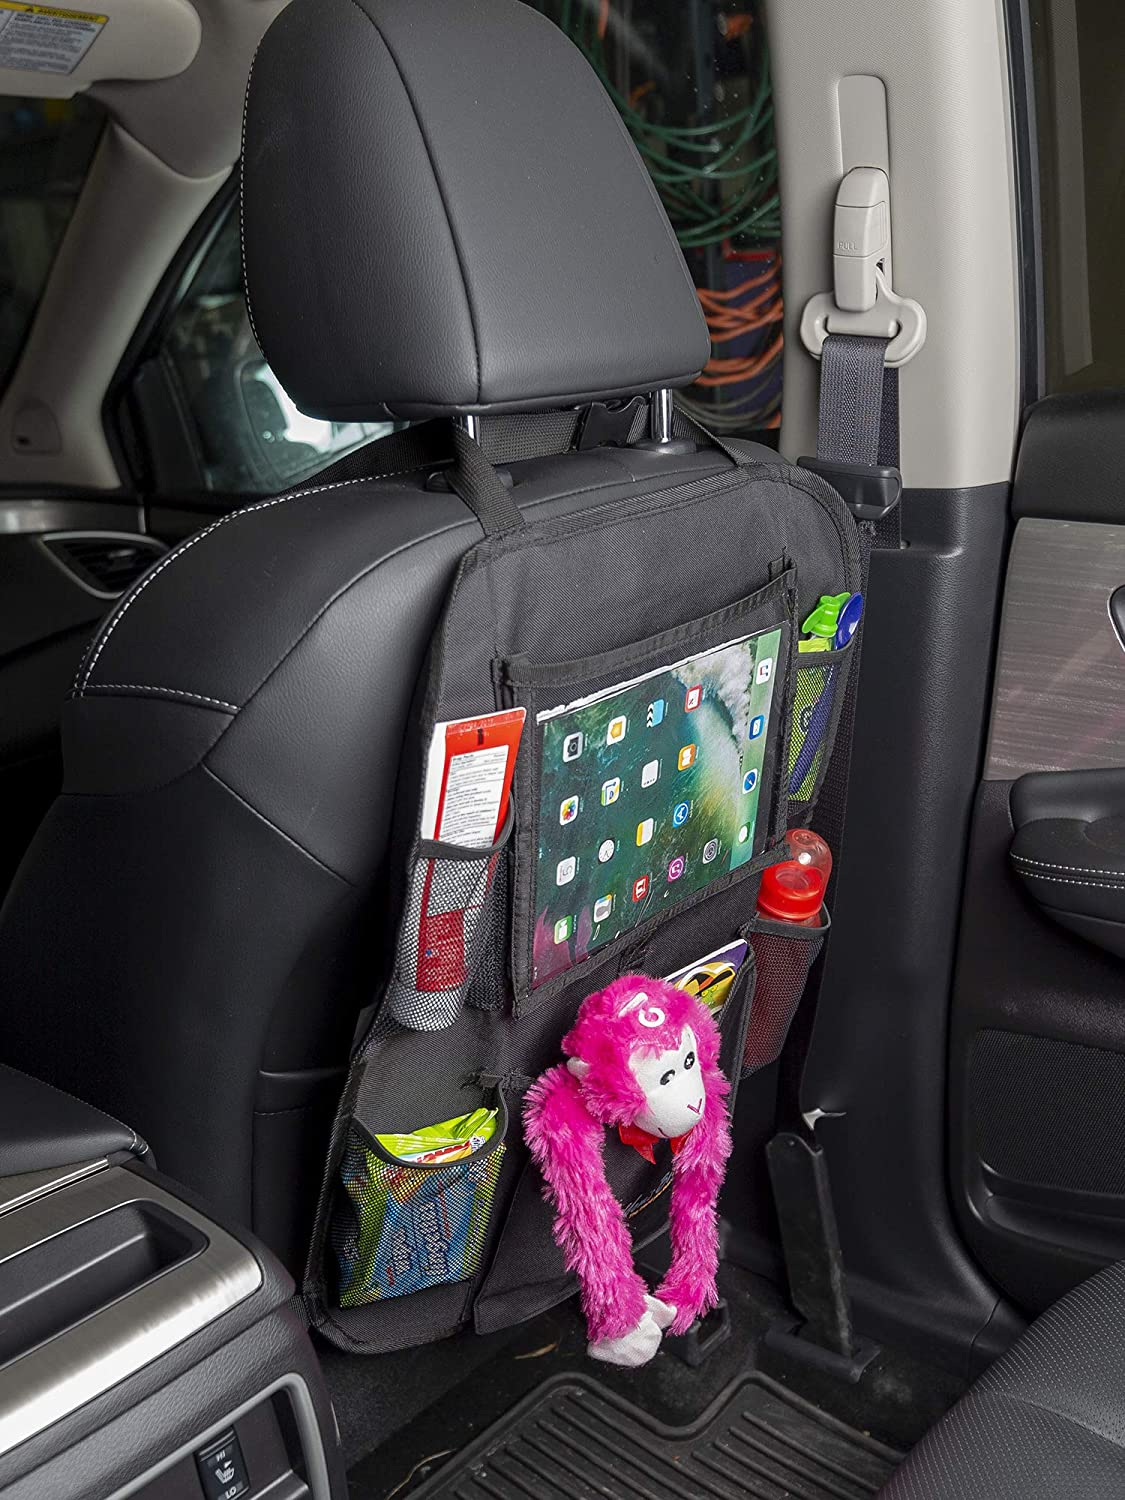 Car Organizer Kick Mat Touch Screen Tablet Holder for Android /& iOS Multipurpose Car Back Seat Organizer for Kids and Toddlers by Tidelands 5 Pockets